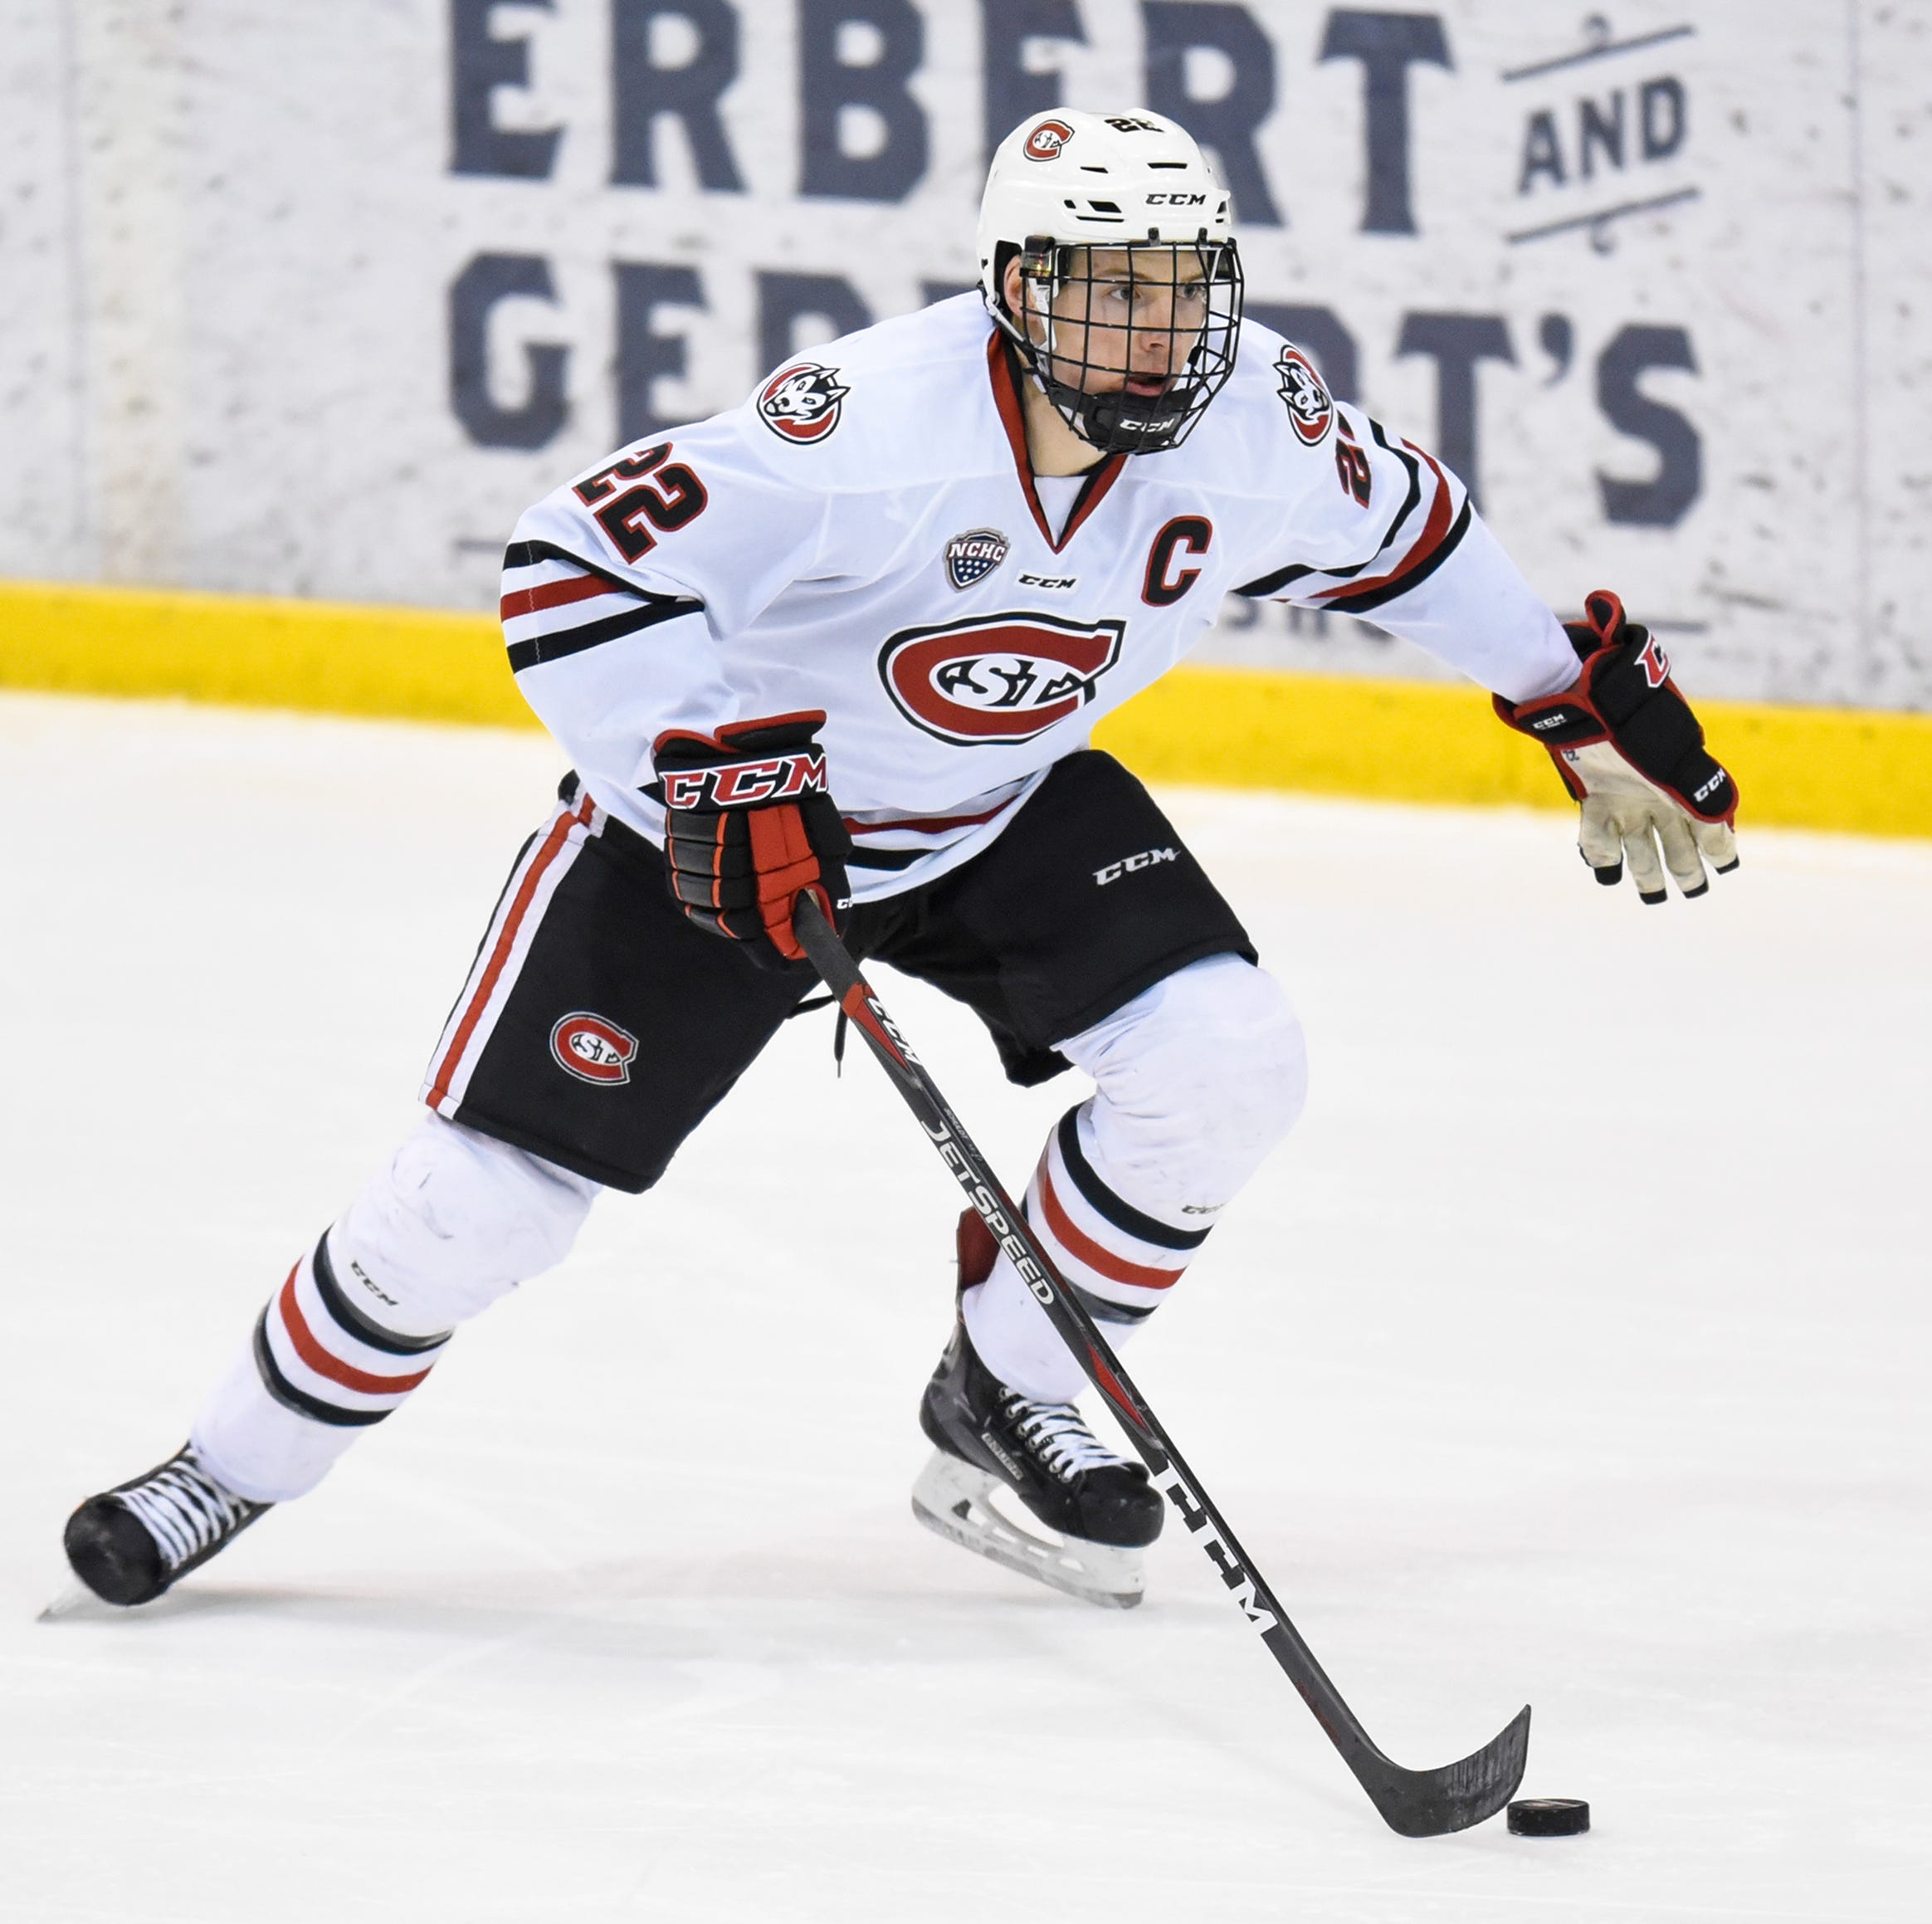 SCSU's Schuldt signs with Vegas Golden Knights, named among top 3 for Hobey Baker Award